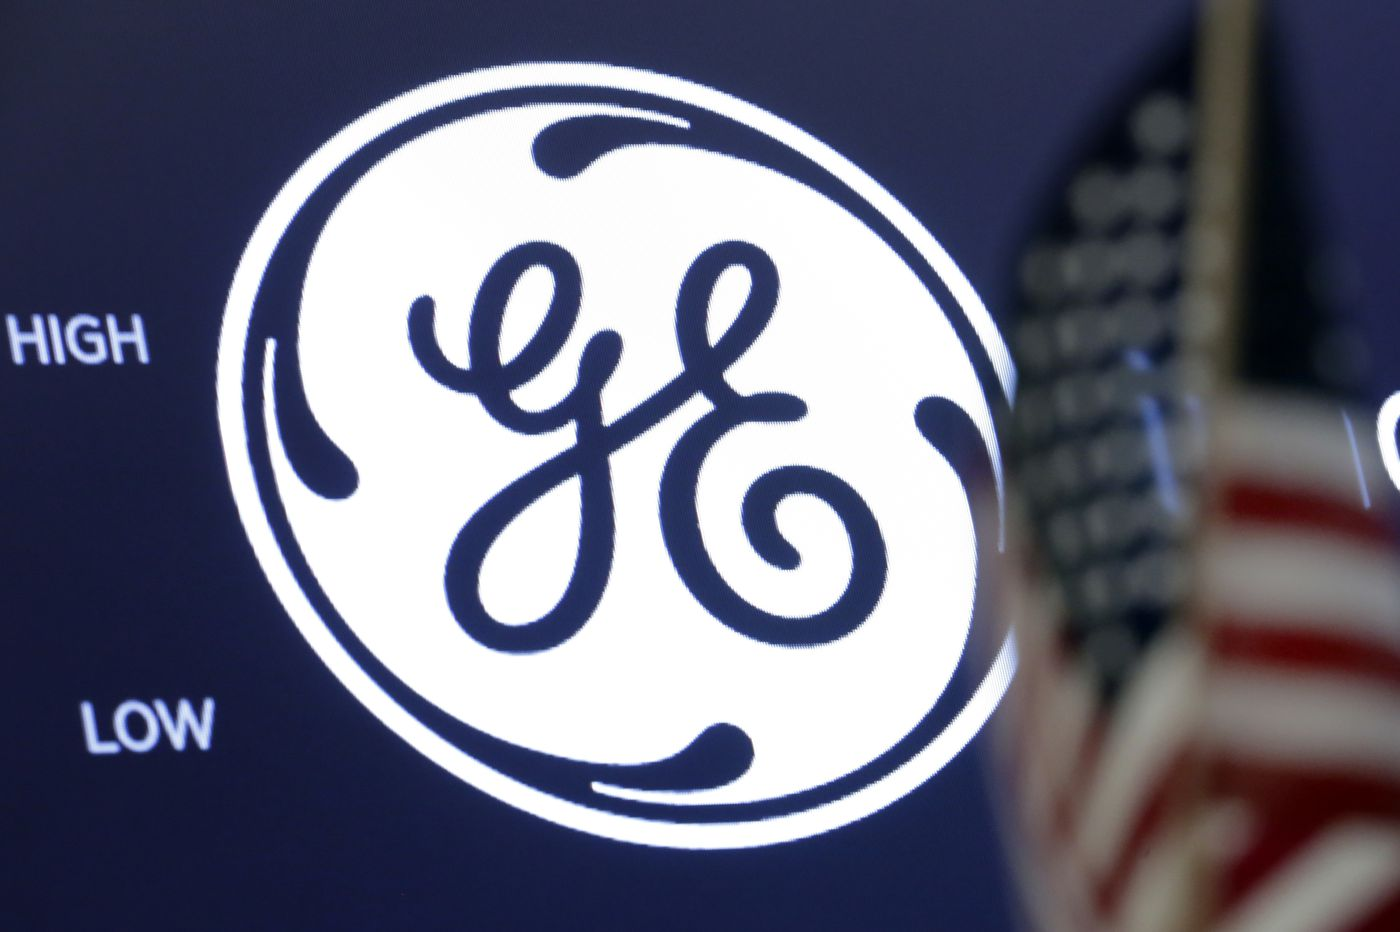 General Electric issues expanded response about fraud allegations, financial reporting